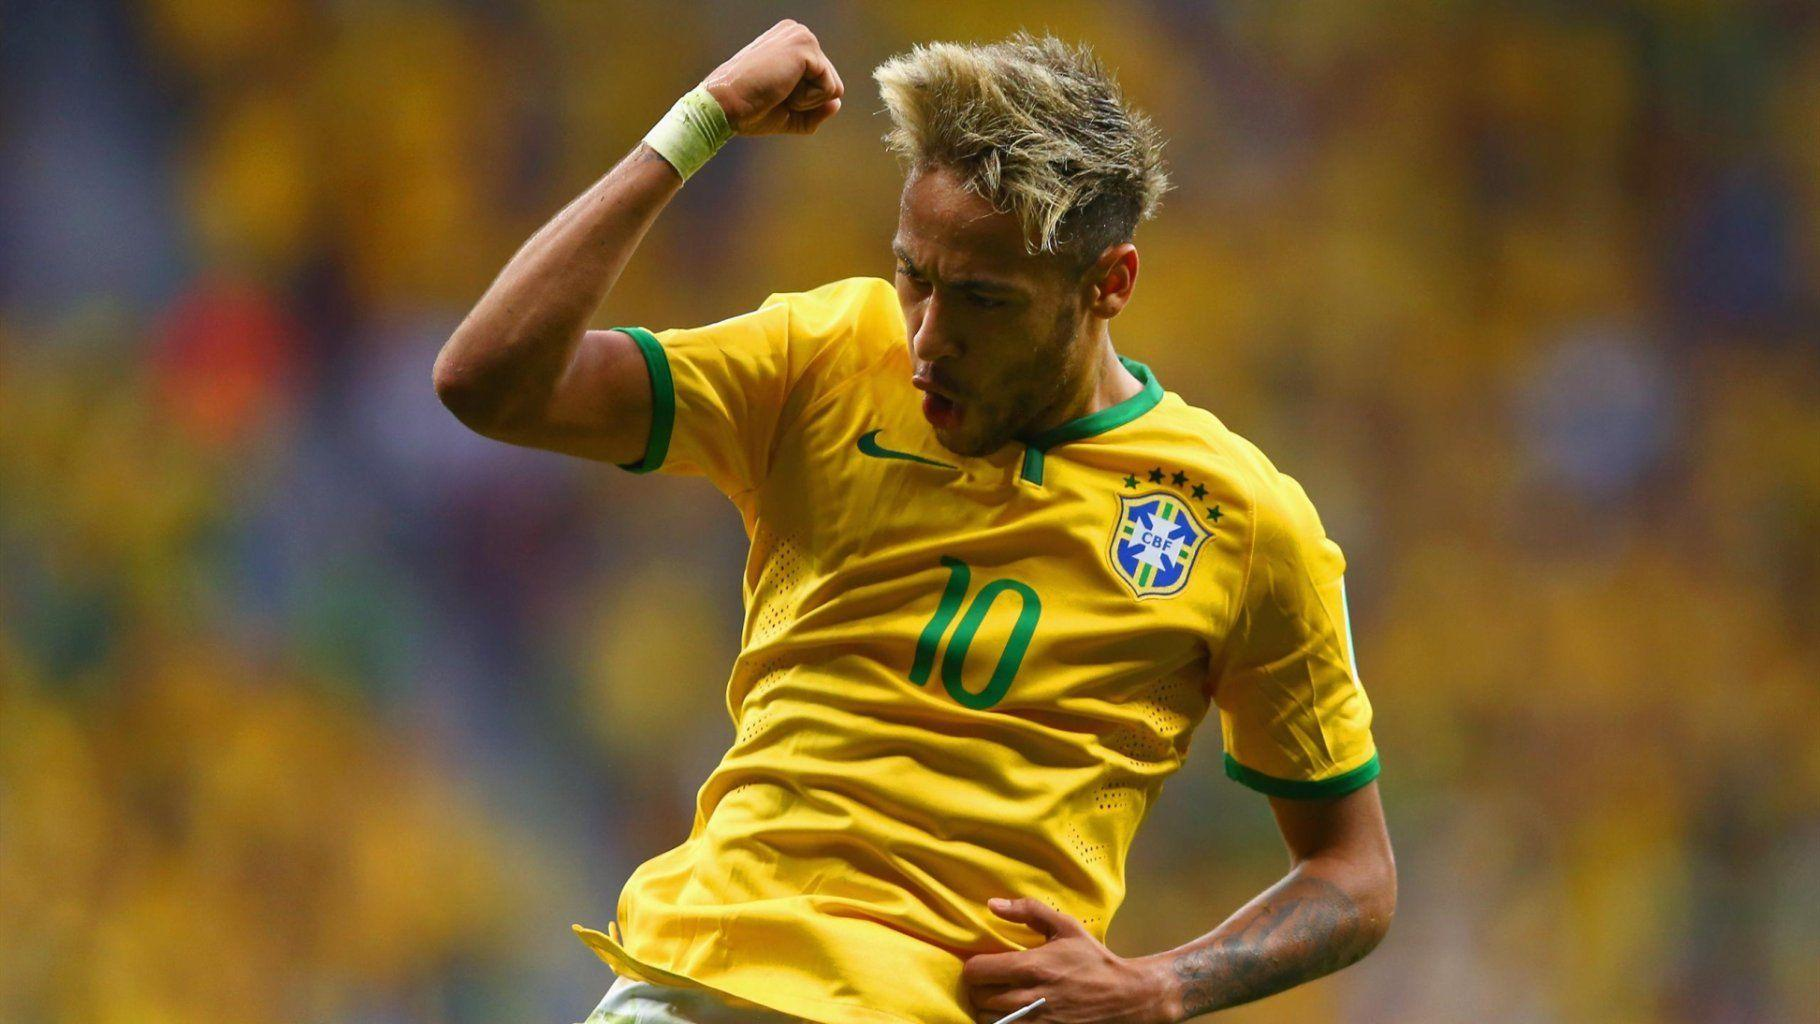 wpid-neymar-goal-celebration-brazil-wallpaper.jpg | 360Nobs.com